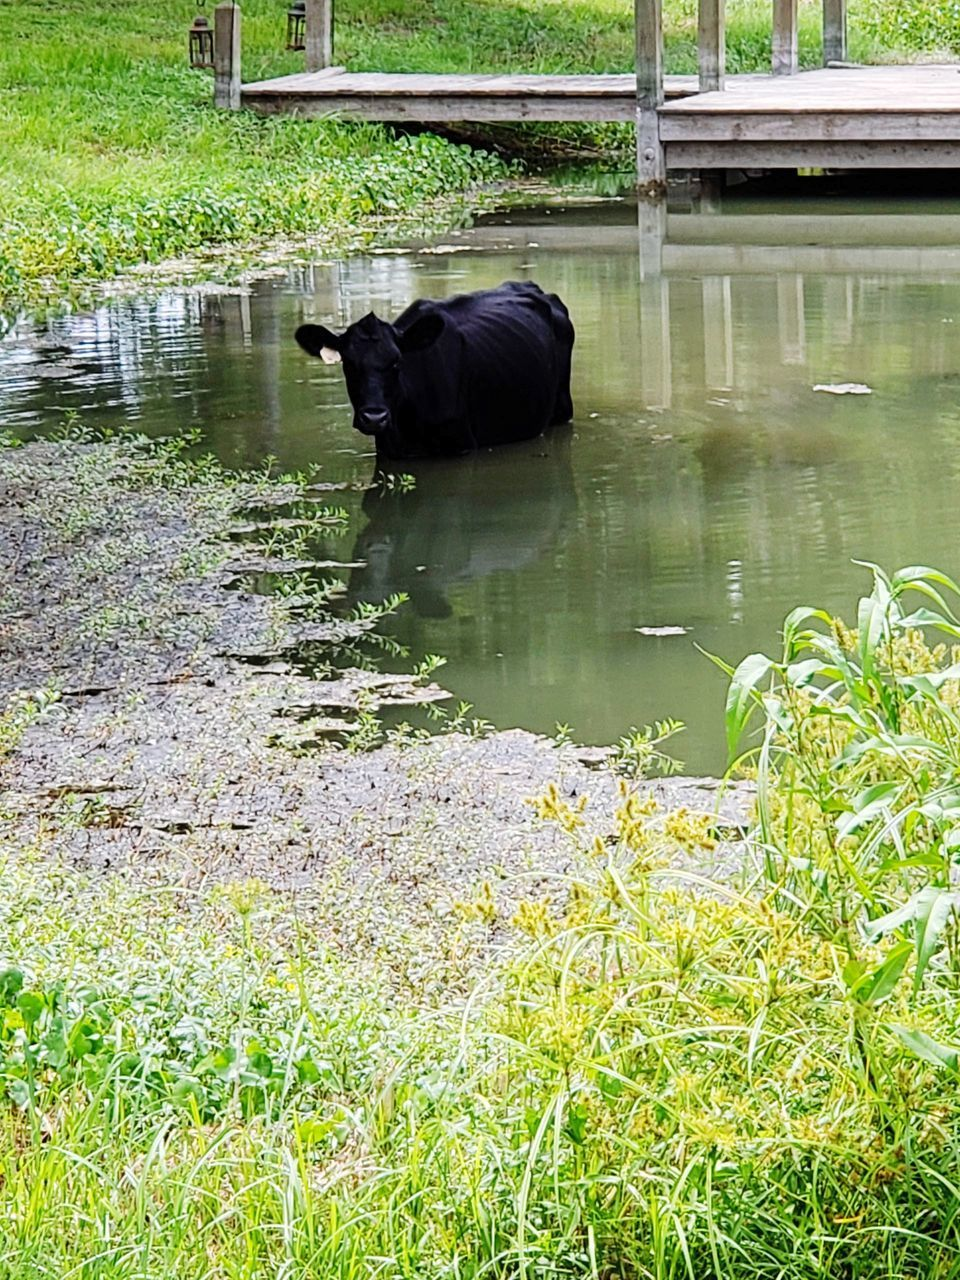 VIEW OF A HORSE IN WATER